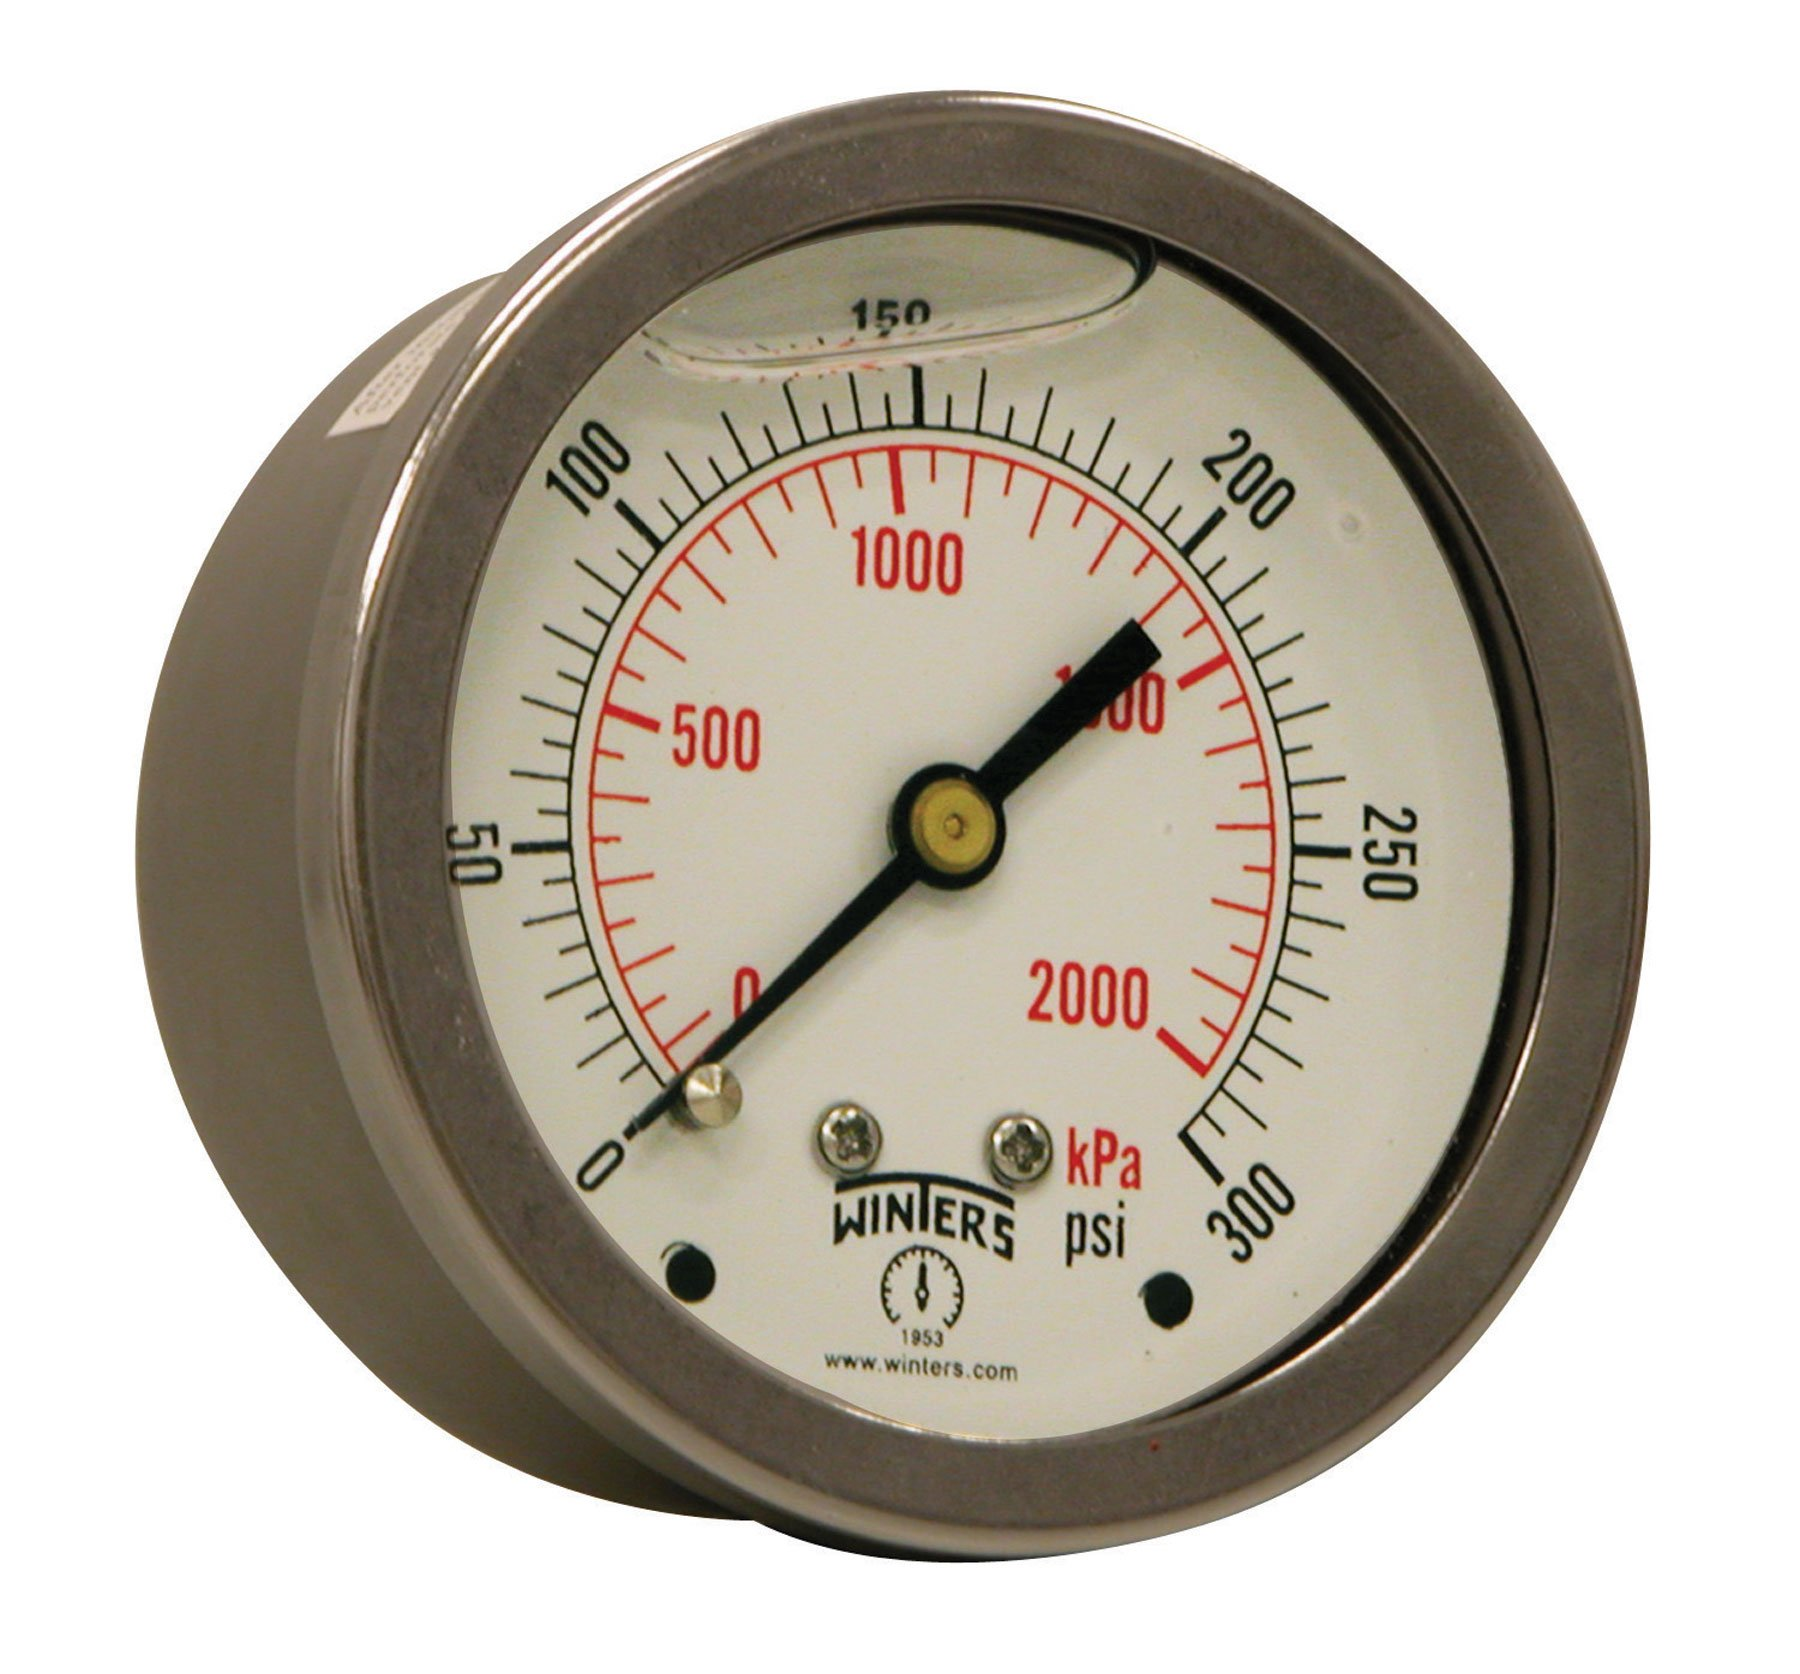 Winters PFQ Series Stainless Steel 304 Dual Scale Liquid Filled Pressure Gauge with Brass Internals, 0-300 psi/kpa,2-1/2'' Dial Display, +/-1.5% Accuracy, 1/4'' NPT Center Back Mount